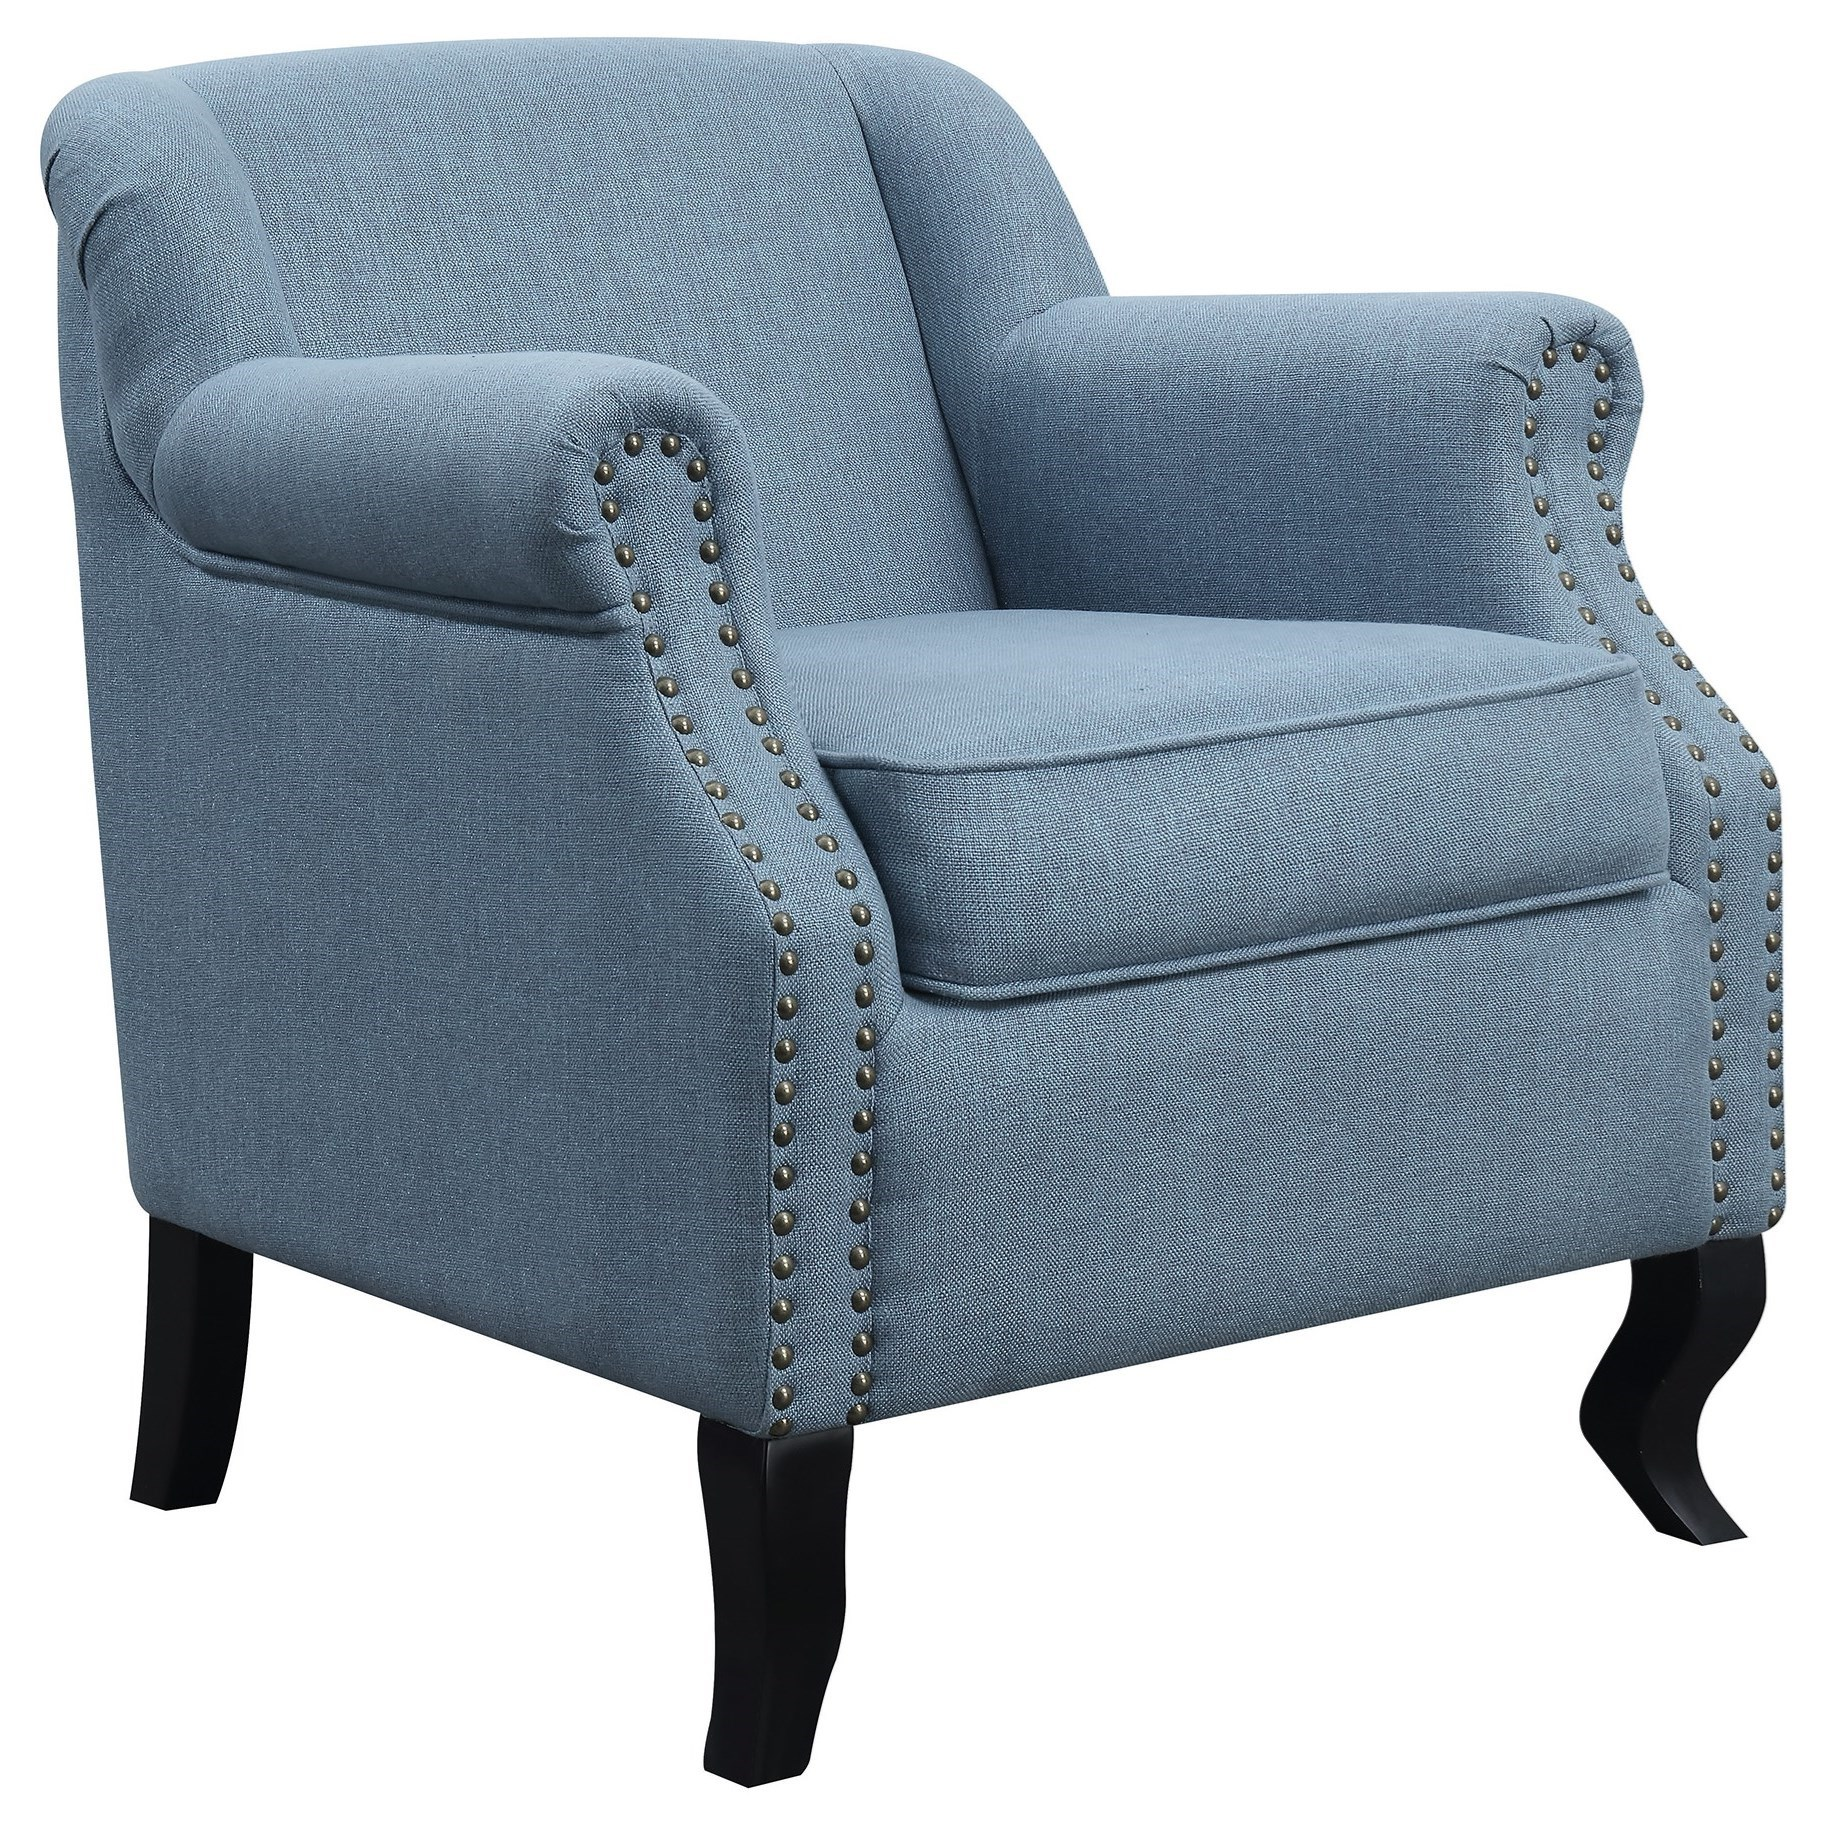 traditional accent chairs west elm leather chair coaster seating 903360